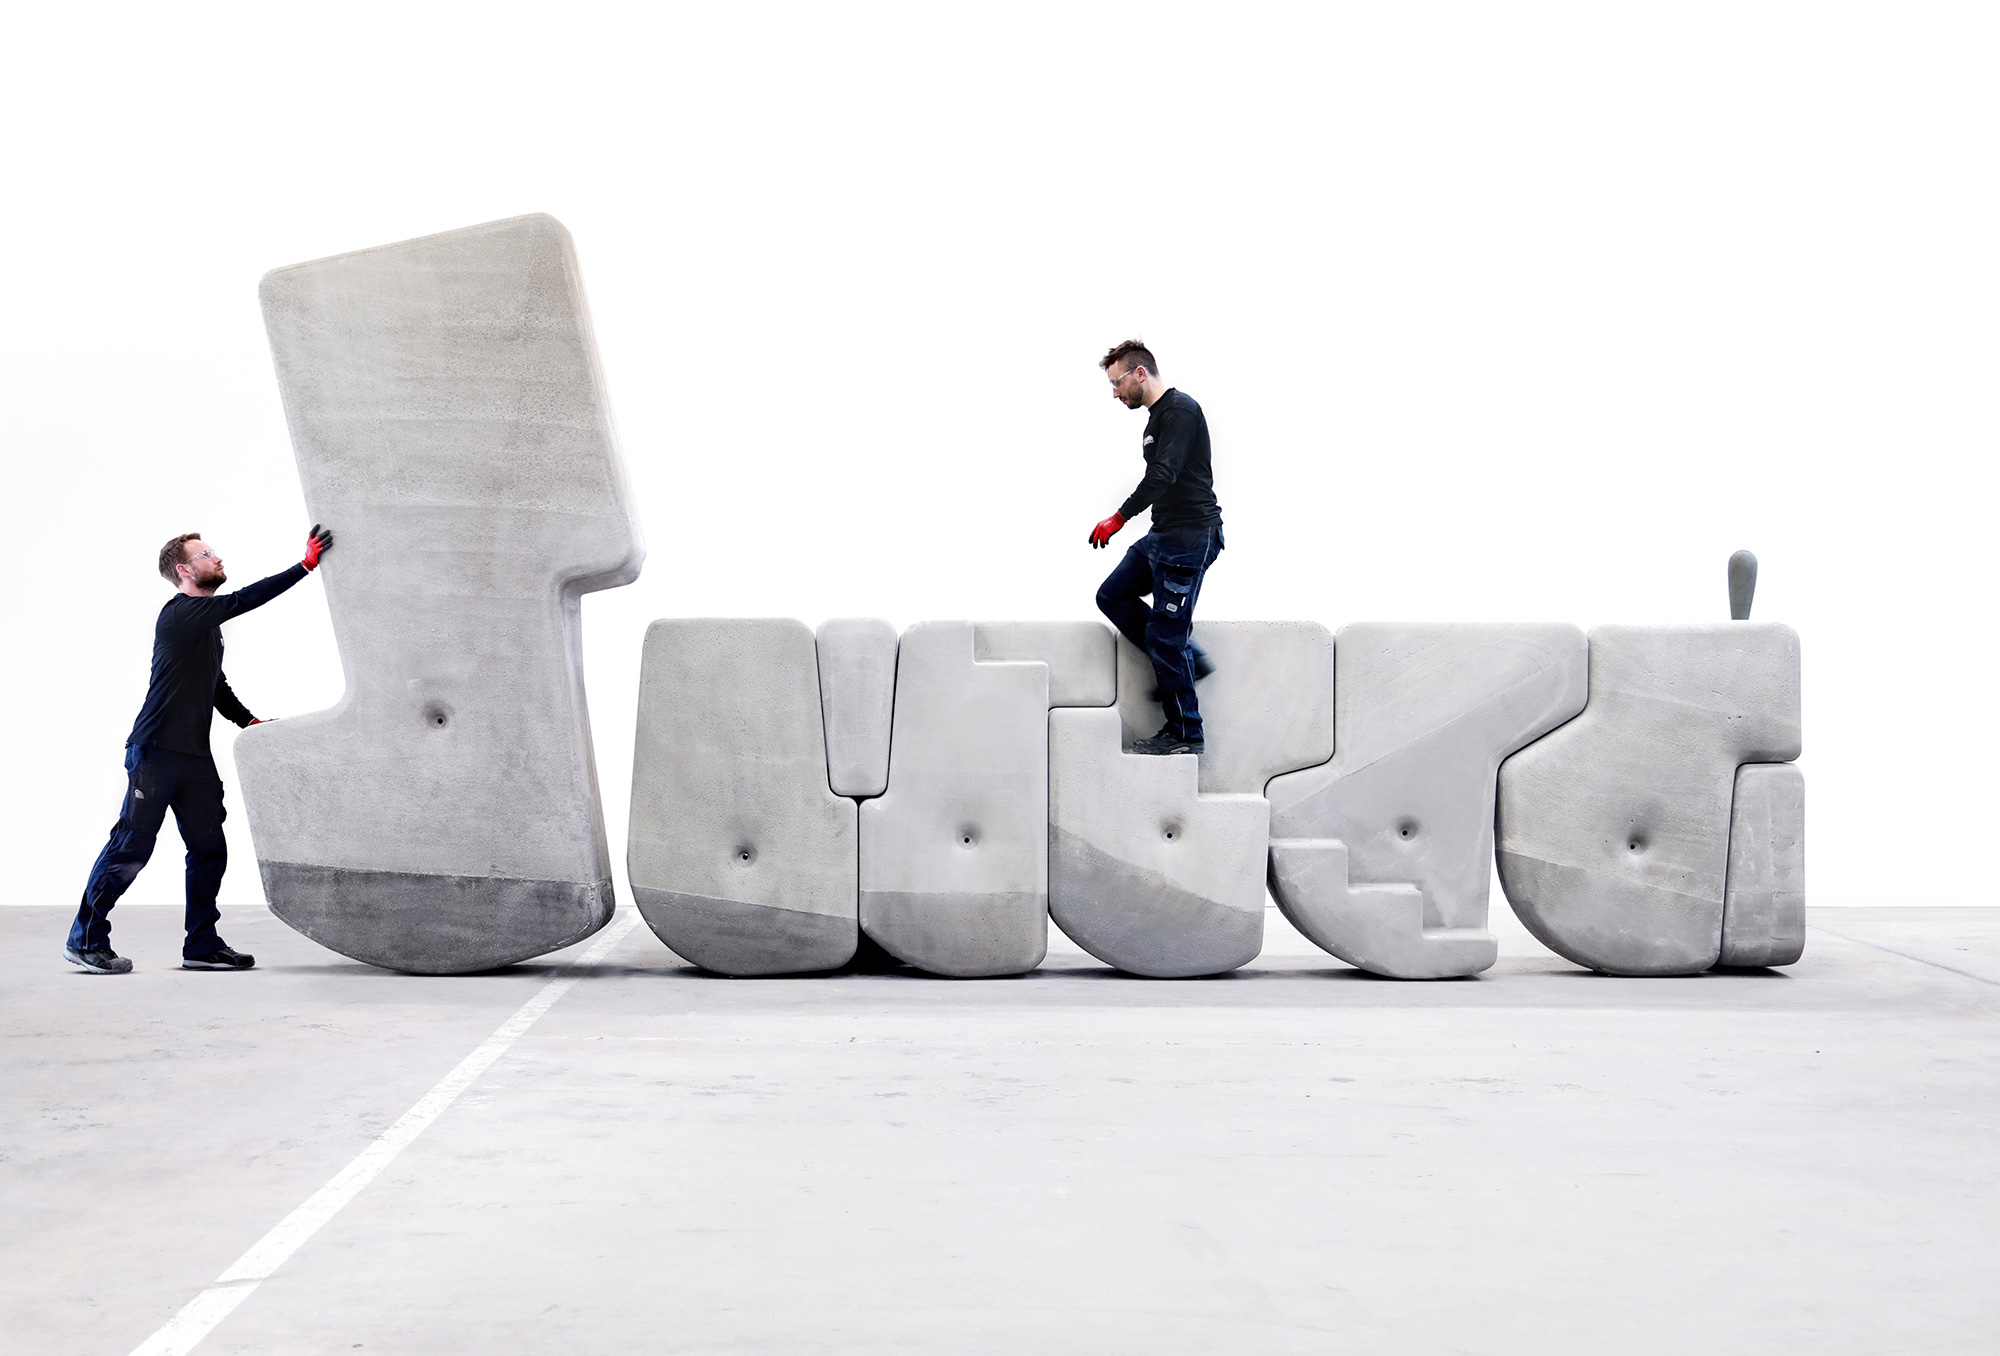 Photo of a man climbing concrete steps and another rocking a large concrete object